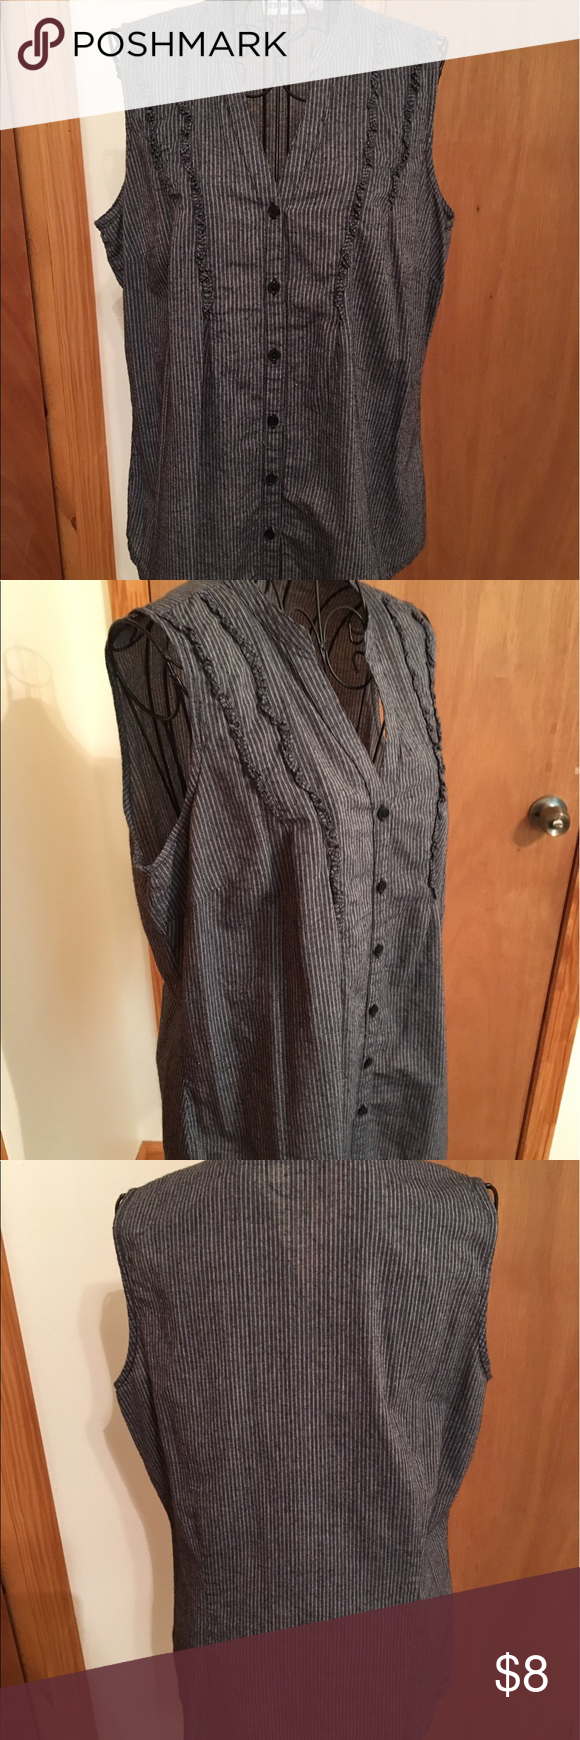 St. Johnson's Bay button up top😍❤ Size Large dark gray top very cute in good preowned condition 😍❤ St. Johnson's Bay Tops Button Down Shirts